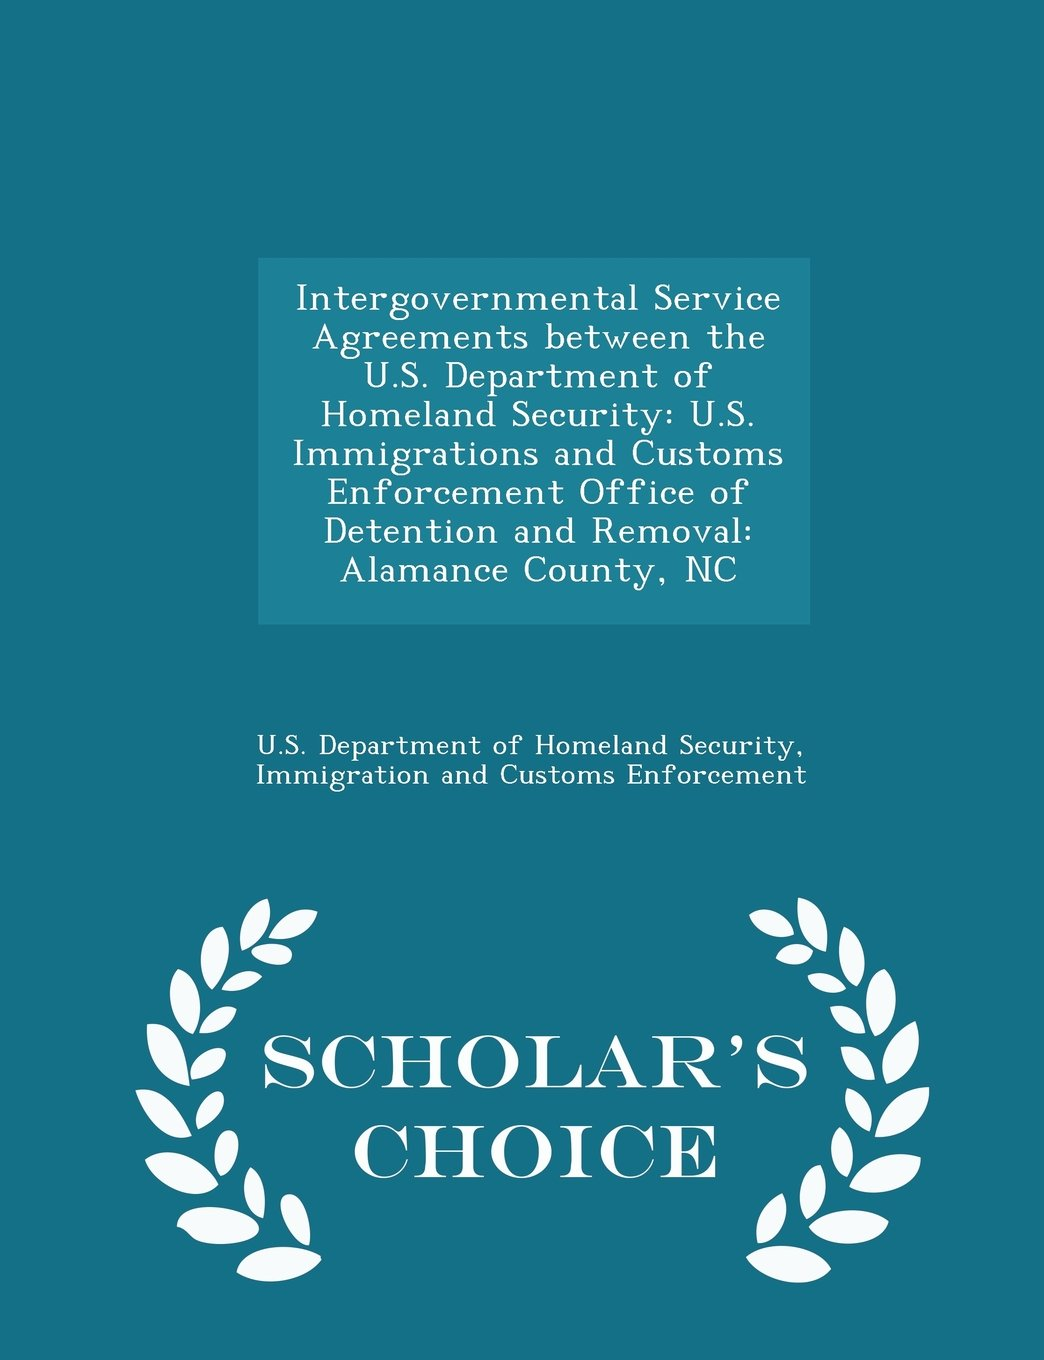 Intergovernmental Service Agreements between the U.S. Department of Homeland Security: U.S. Immigrations and Customs Enforcement Office of Detention ... County, NC - Scholar's Choice Edition ebook